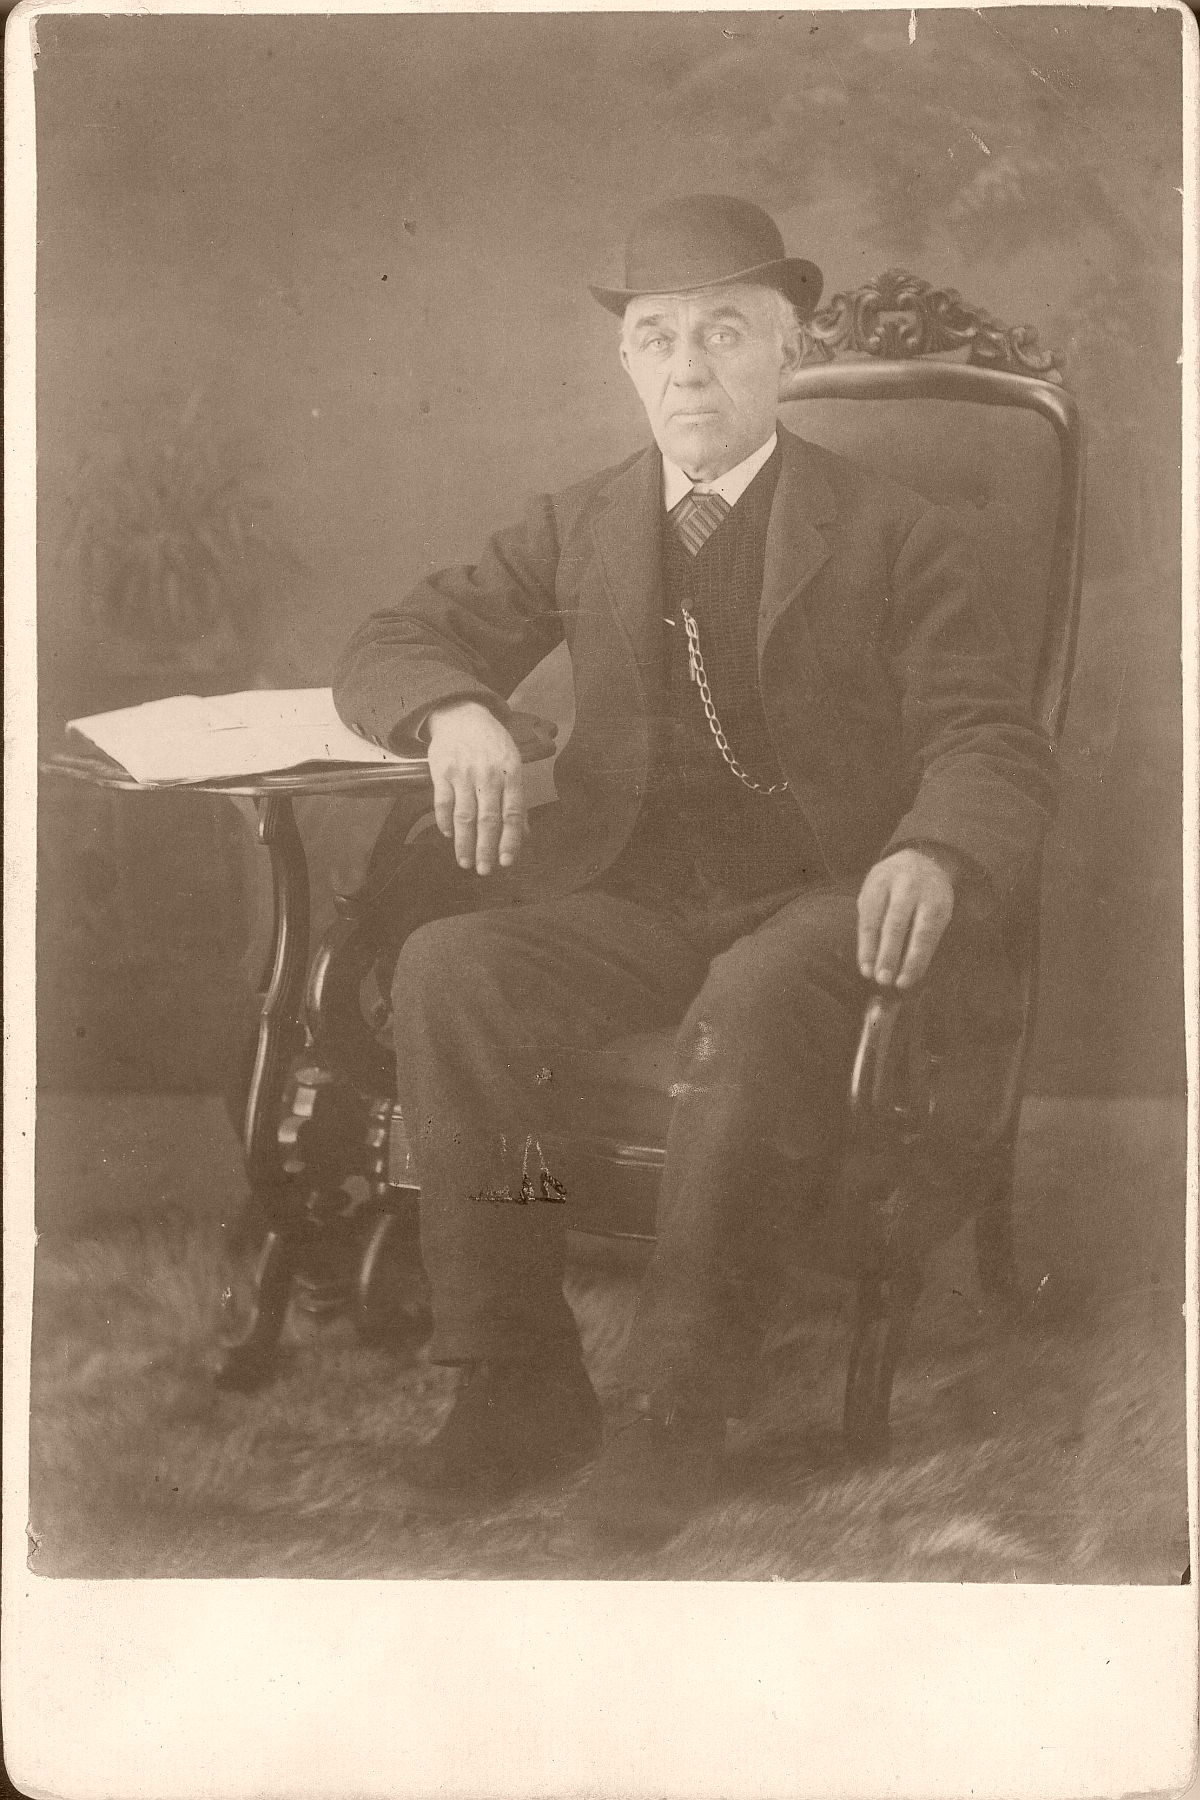 cabinet-cards-1870s-to-1880s-vintage-19th-century-victorian-era-12